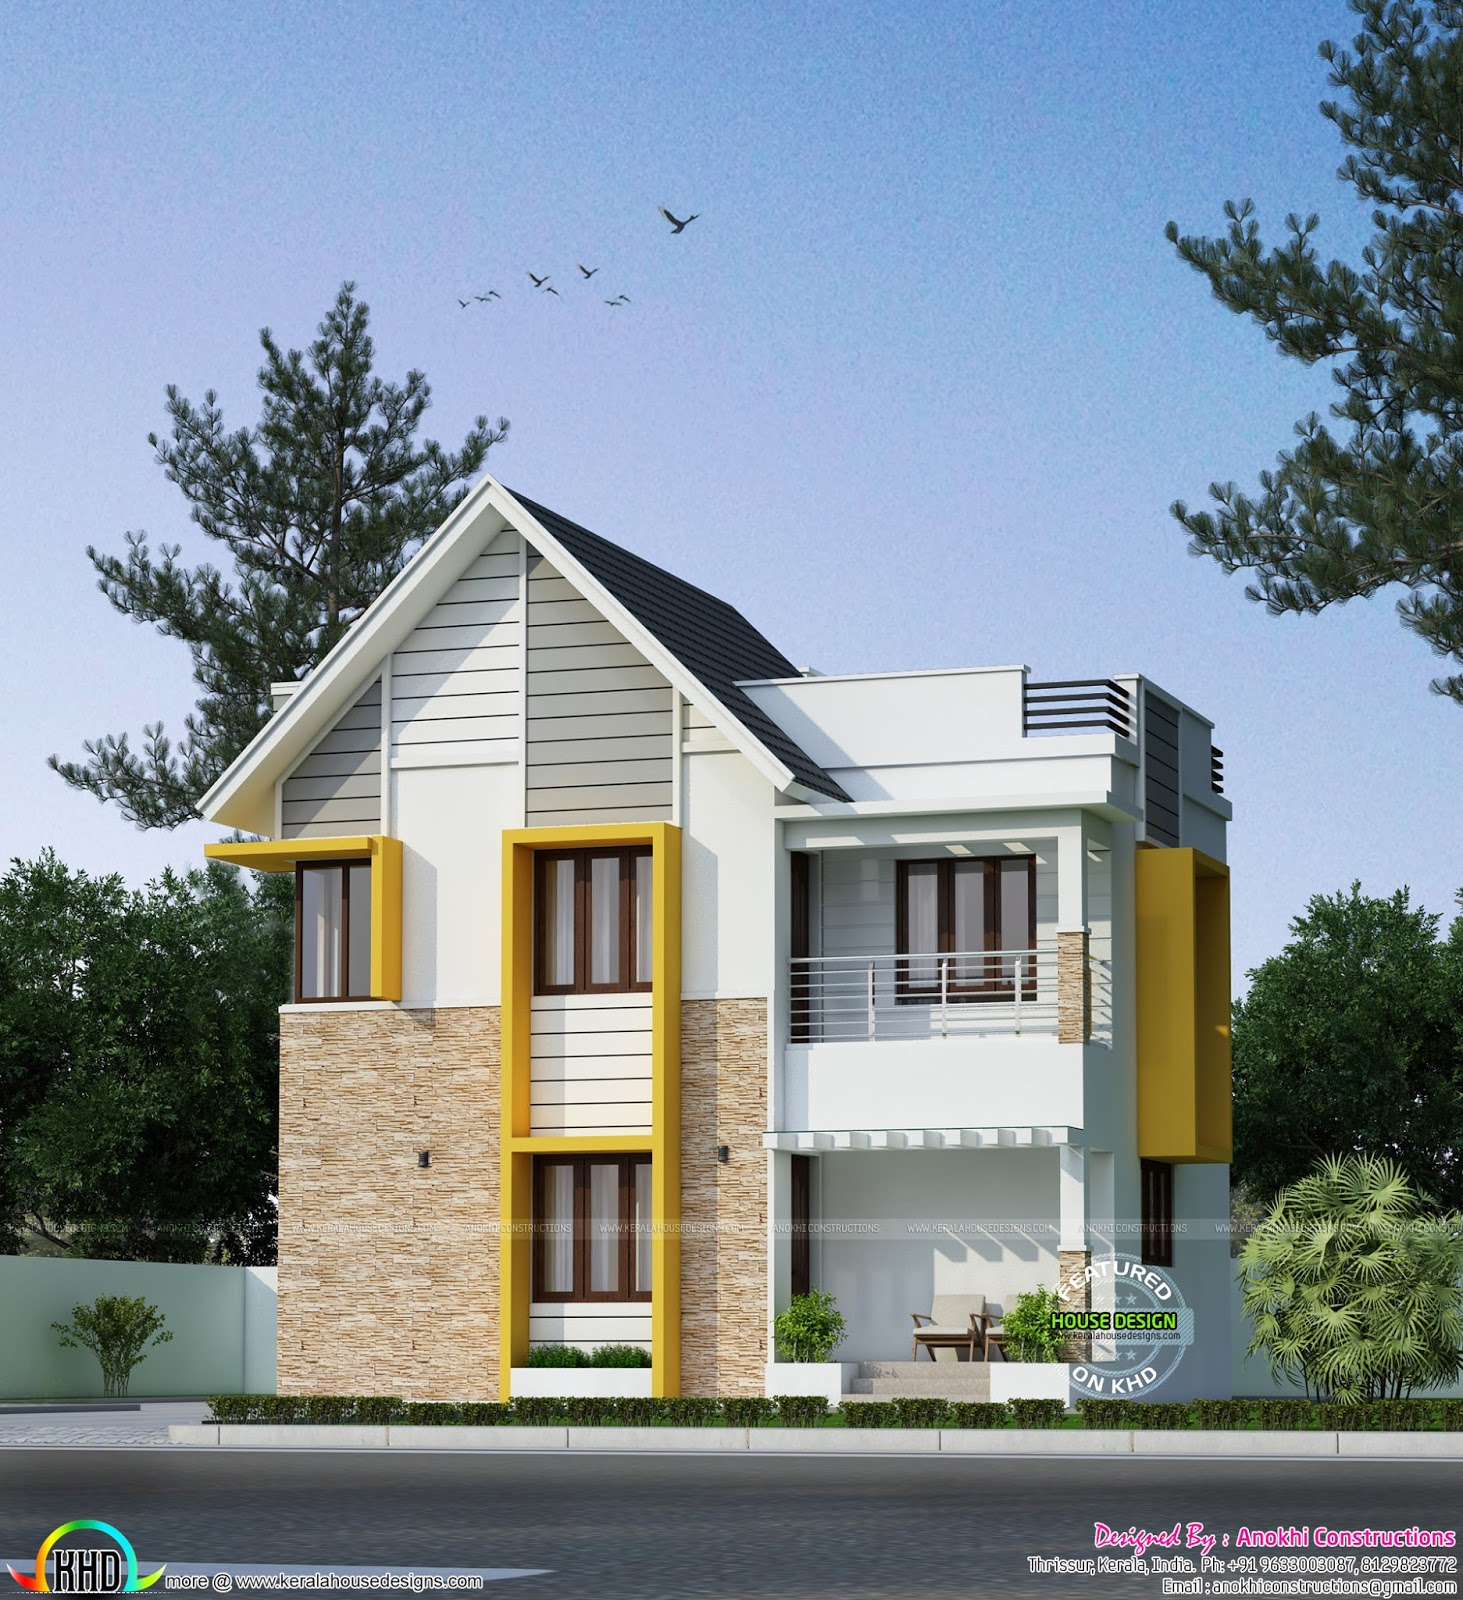 20 Lakh Home In Surat 21 Lakh Cost Estimated Space Saving Home Design Kerala